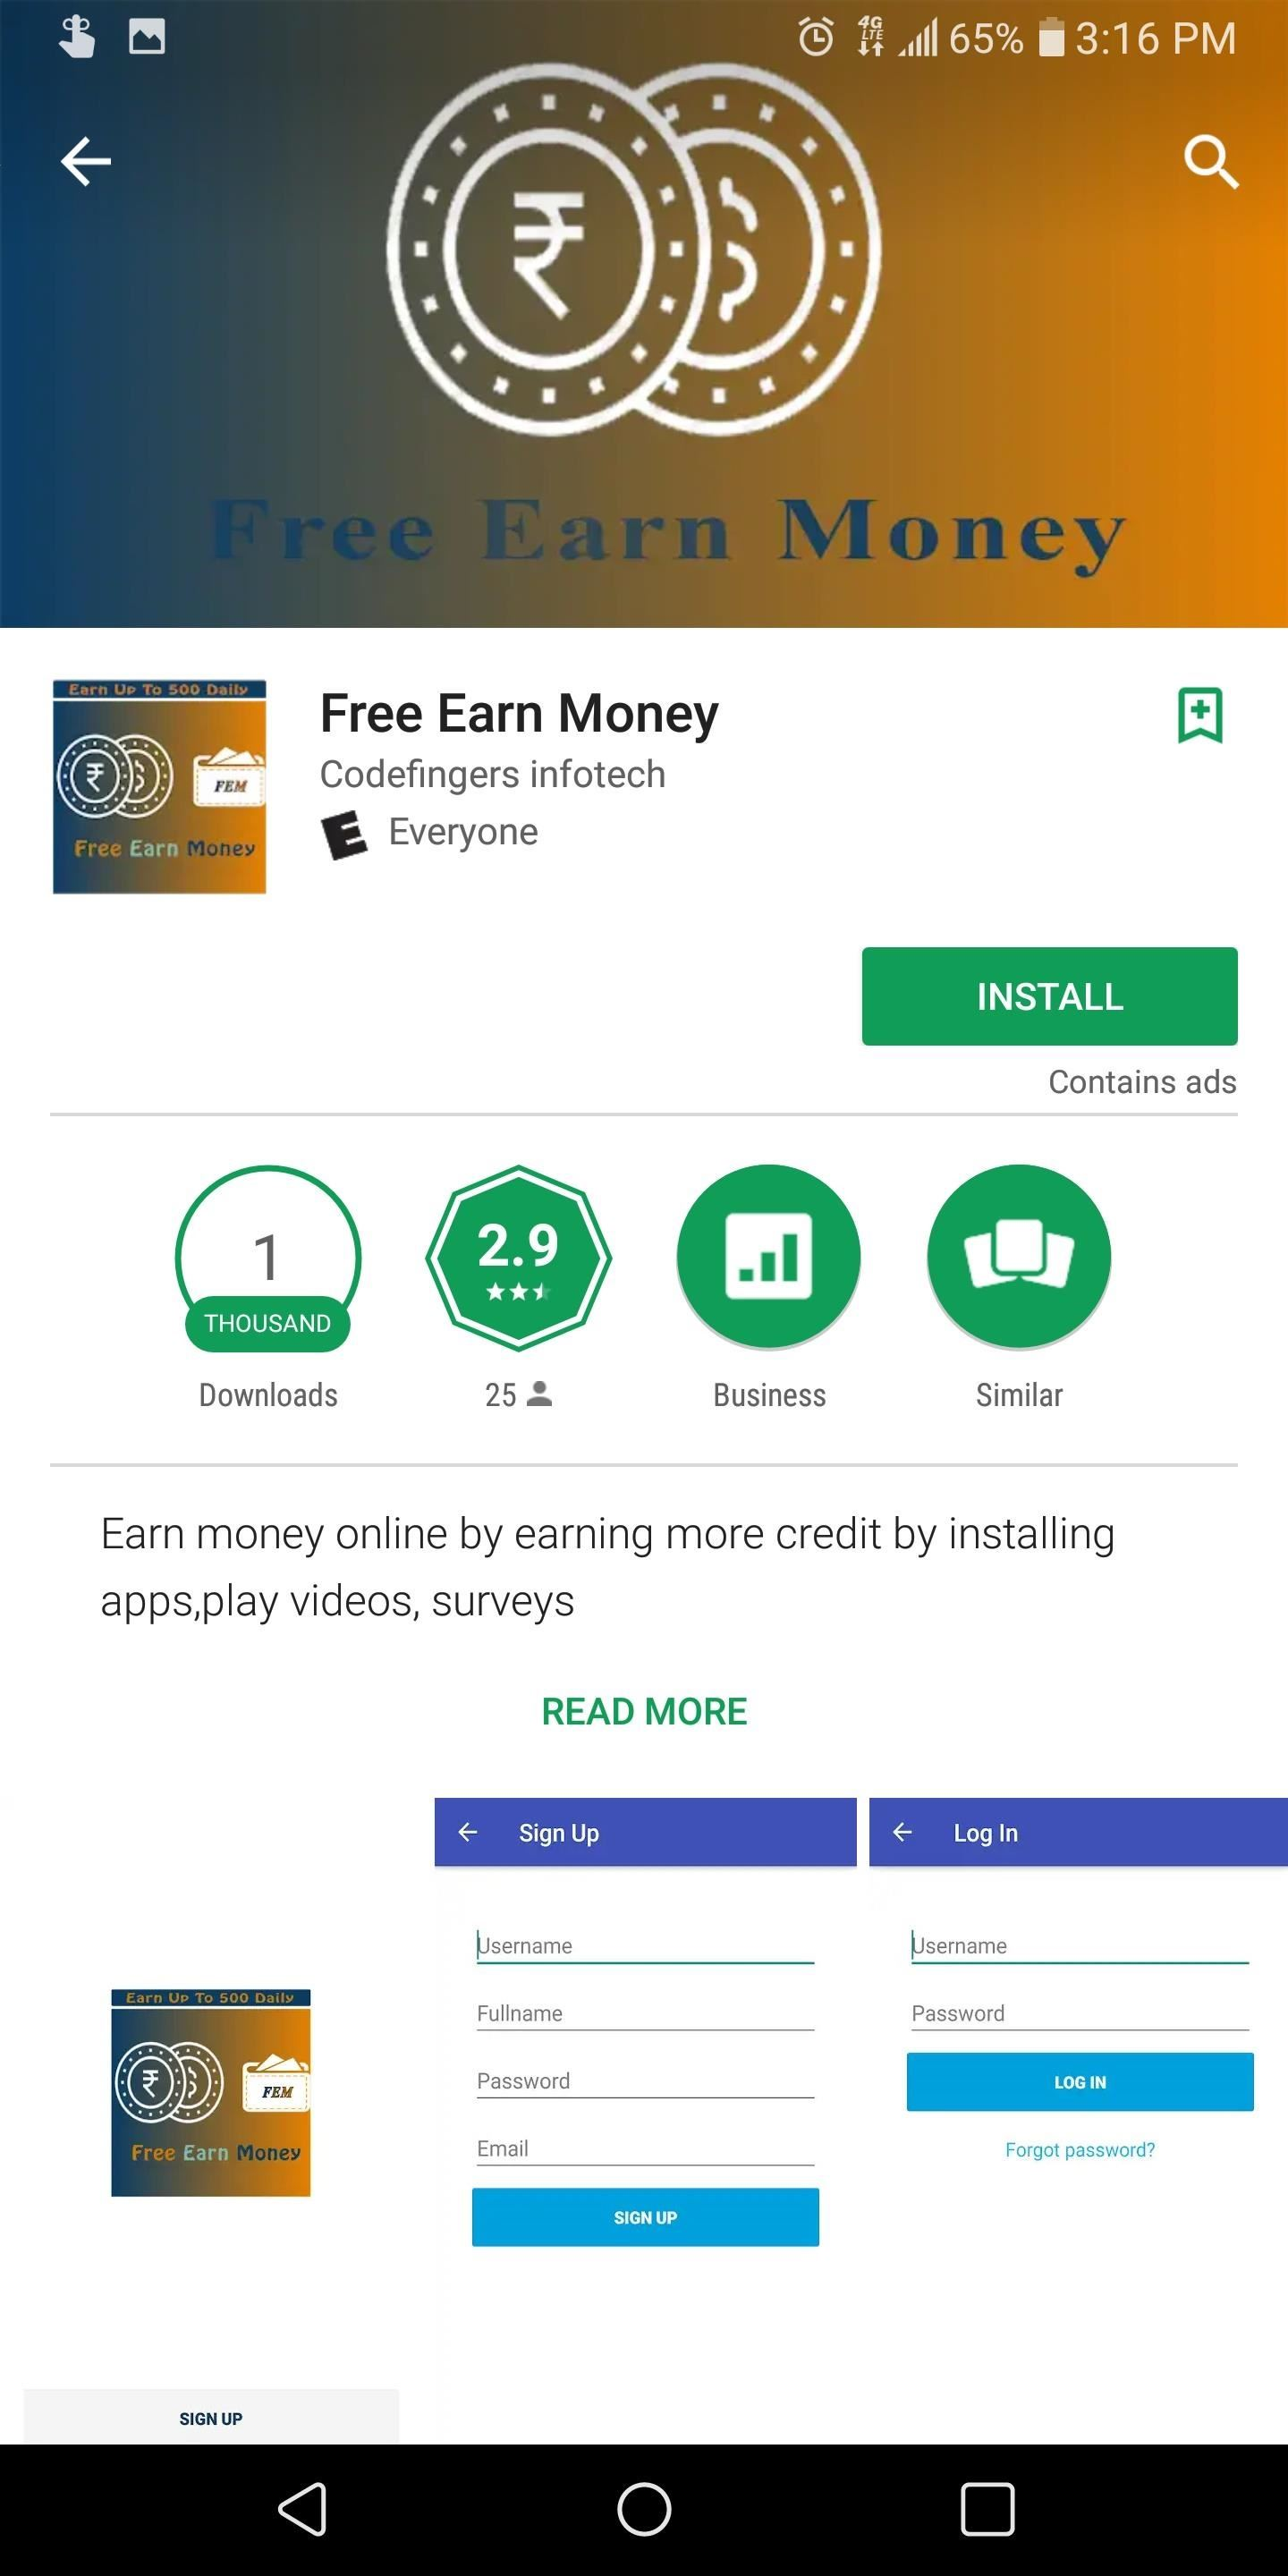 Smartphone Scams: 6 Types of Bad Apps You Should Never Download